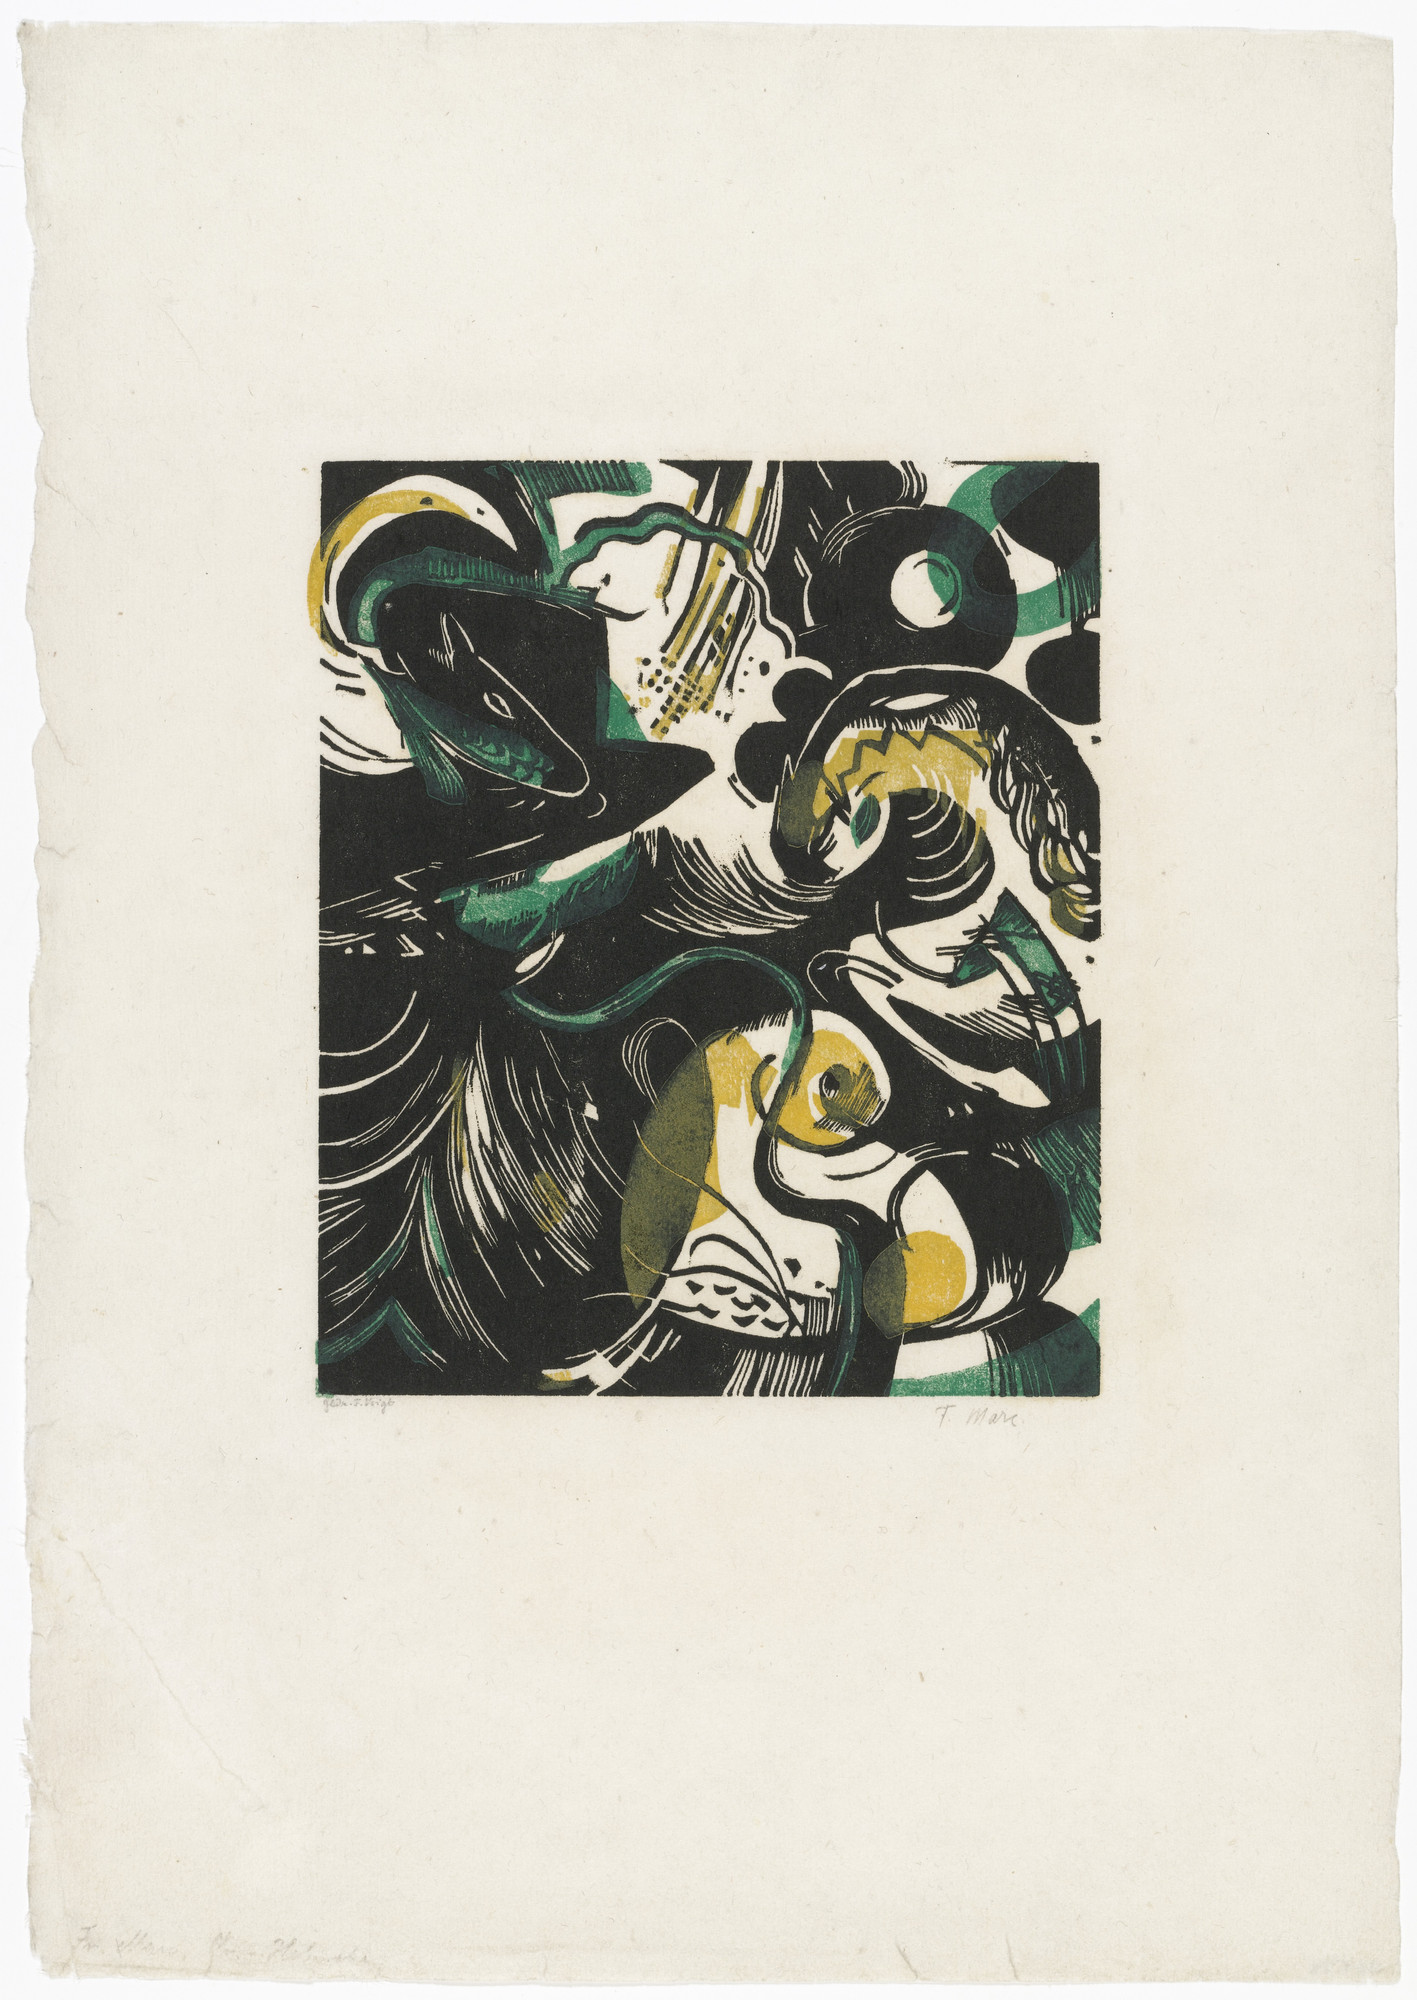 Franz Marc. Genesis II (Schöpfungsgeschichte II) from The First Portfolio (Die erste Mappe). (1914, posthumously printed and published 1921)